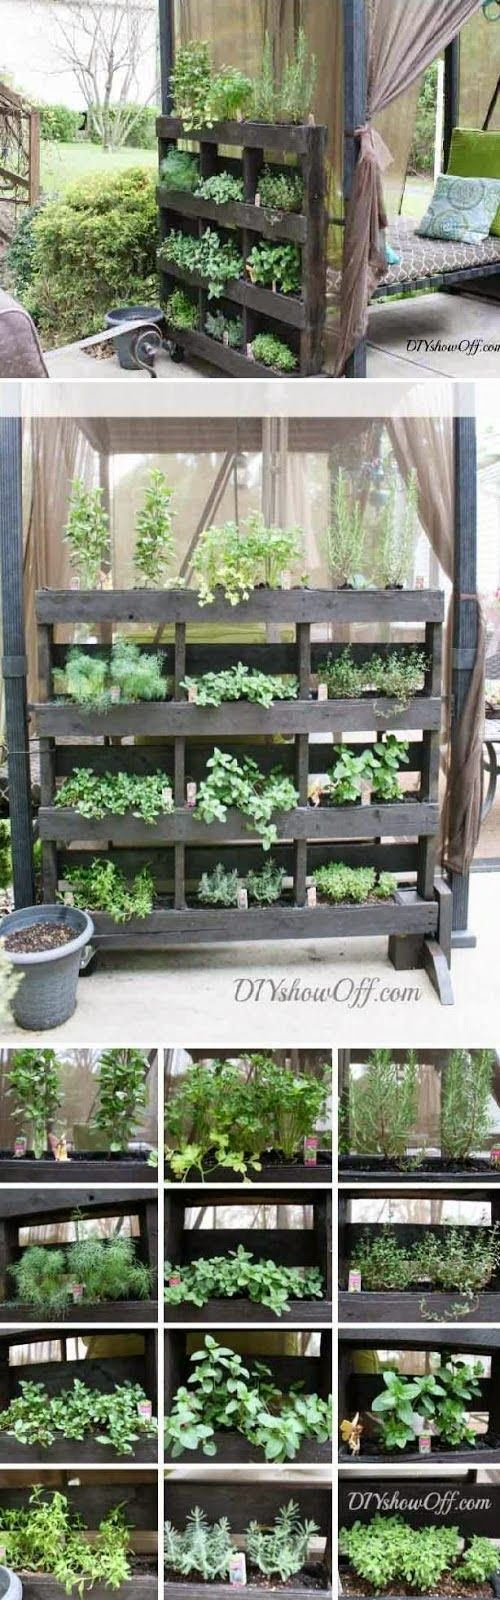 Best DIY Projects: Free Standing Pallet Herb Garden Tutorial